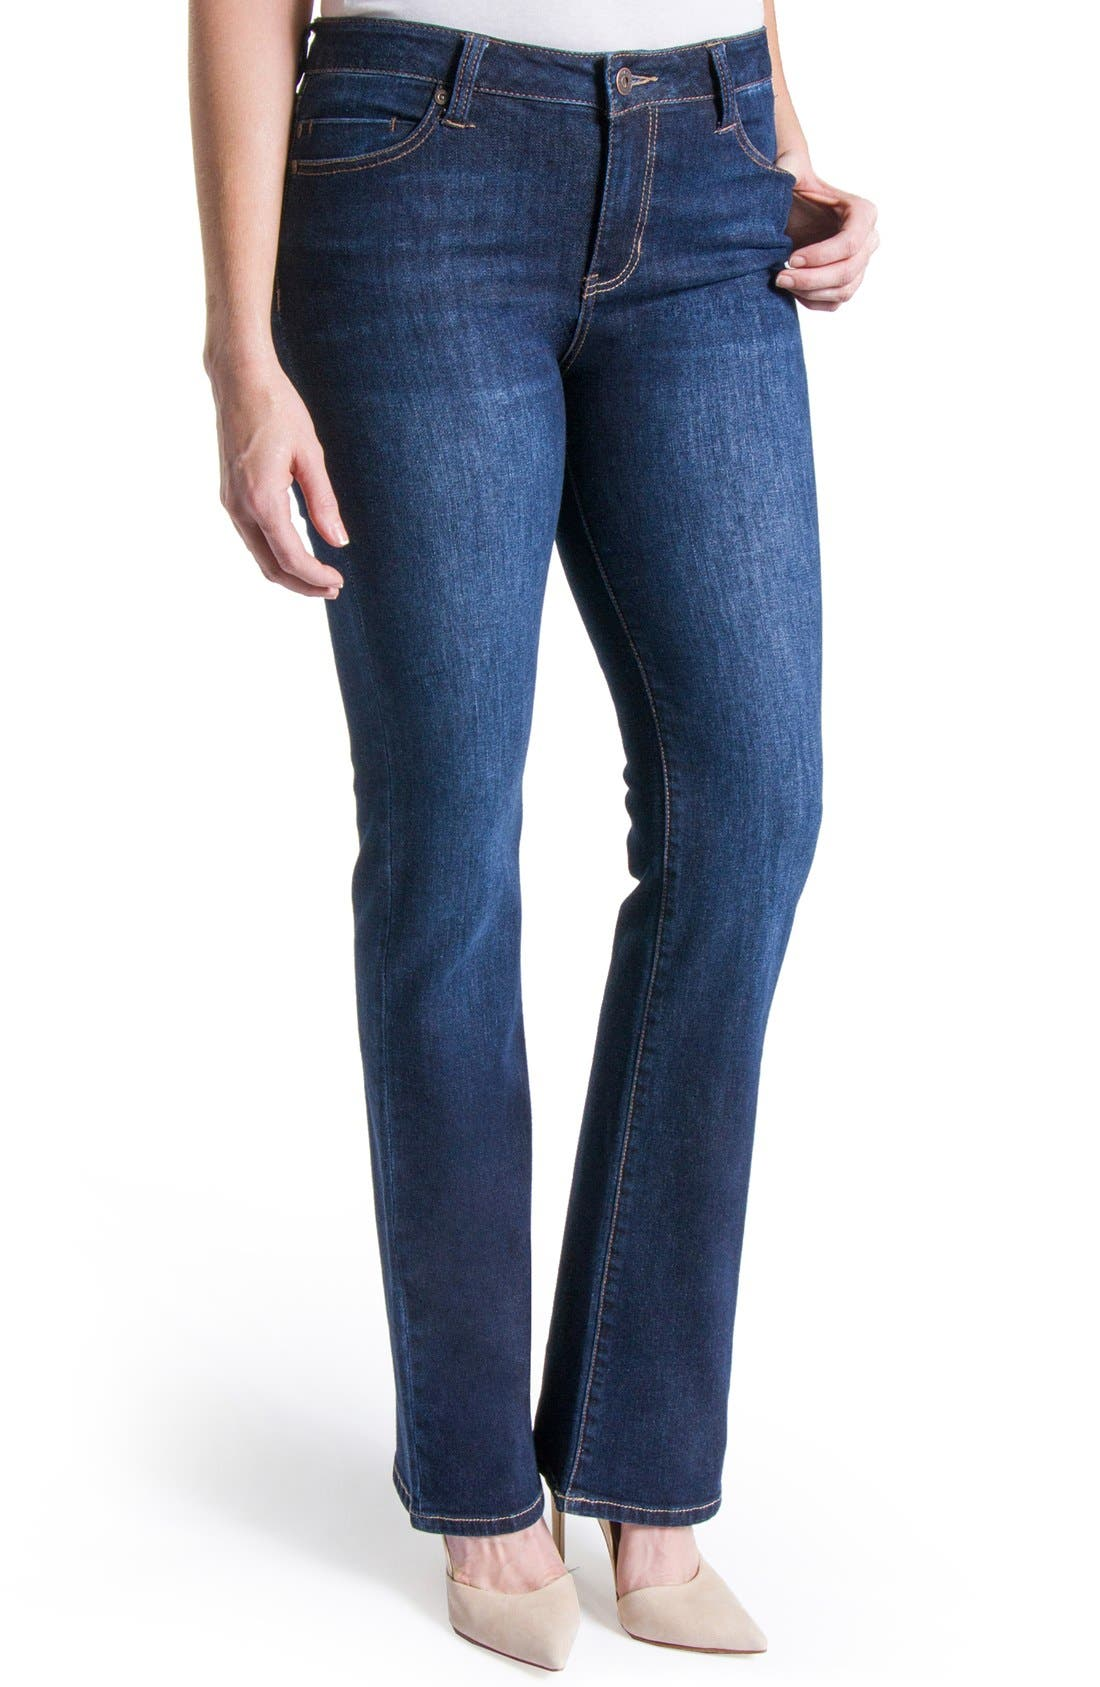 Alternate Image 3  - Liverpool Jeans Company 'Lucy' Stretch Bootcut Jeans (Vintage Super Dark) (Regular & Petite)